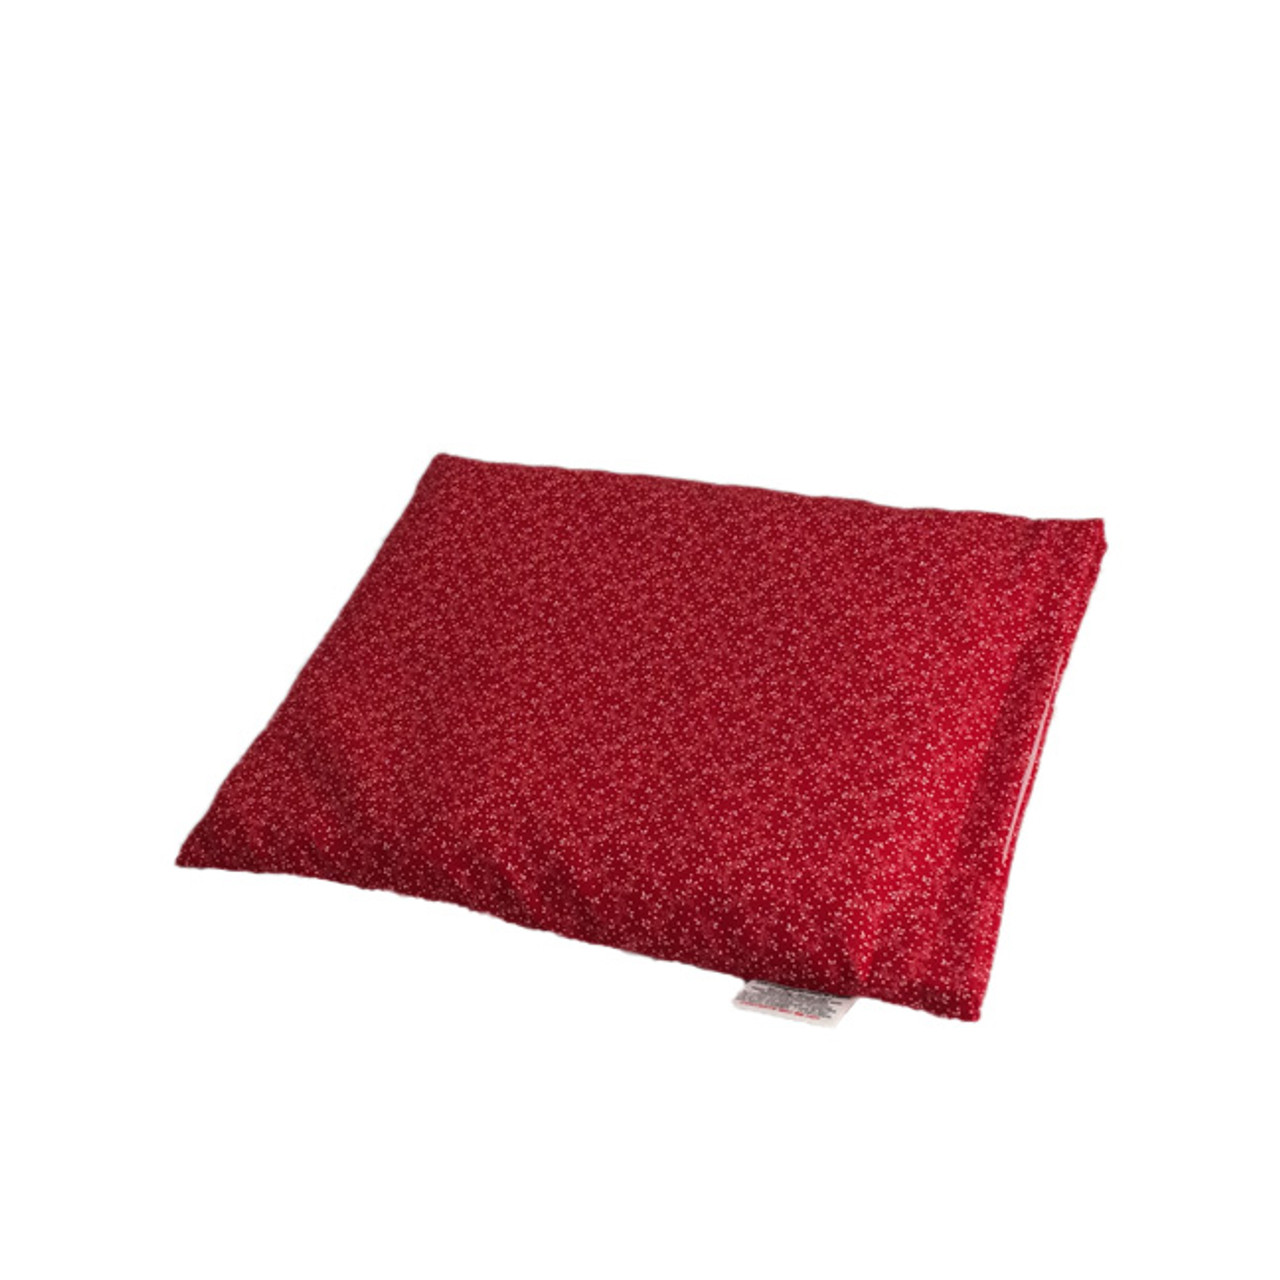 Red With White Flowers Pillow Warmer Microwave Heating Pad